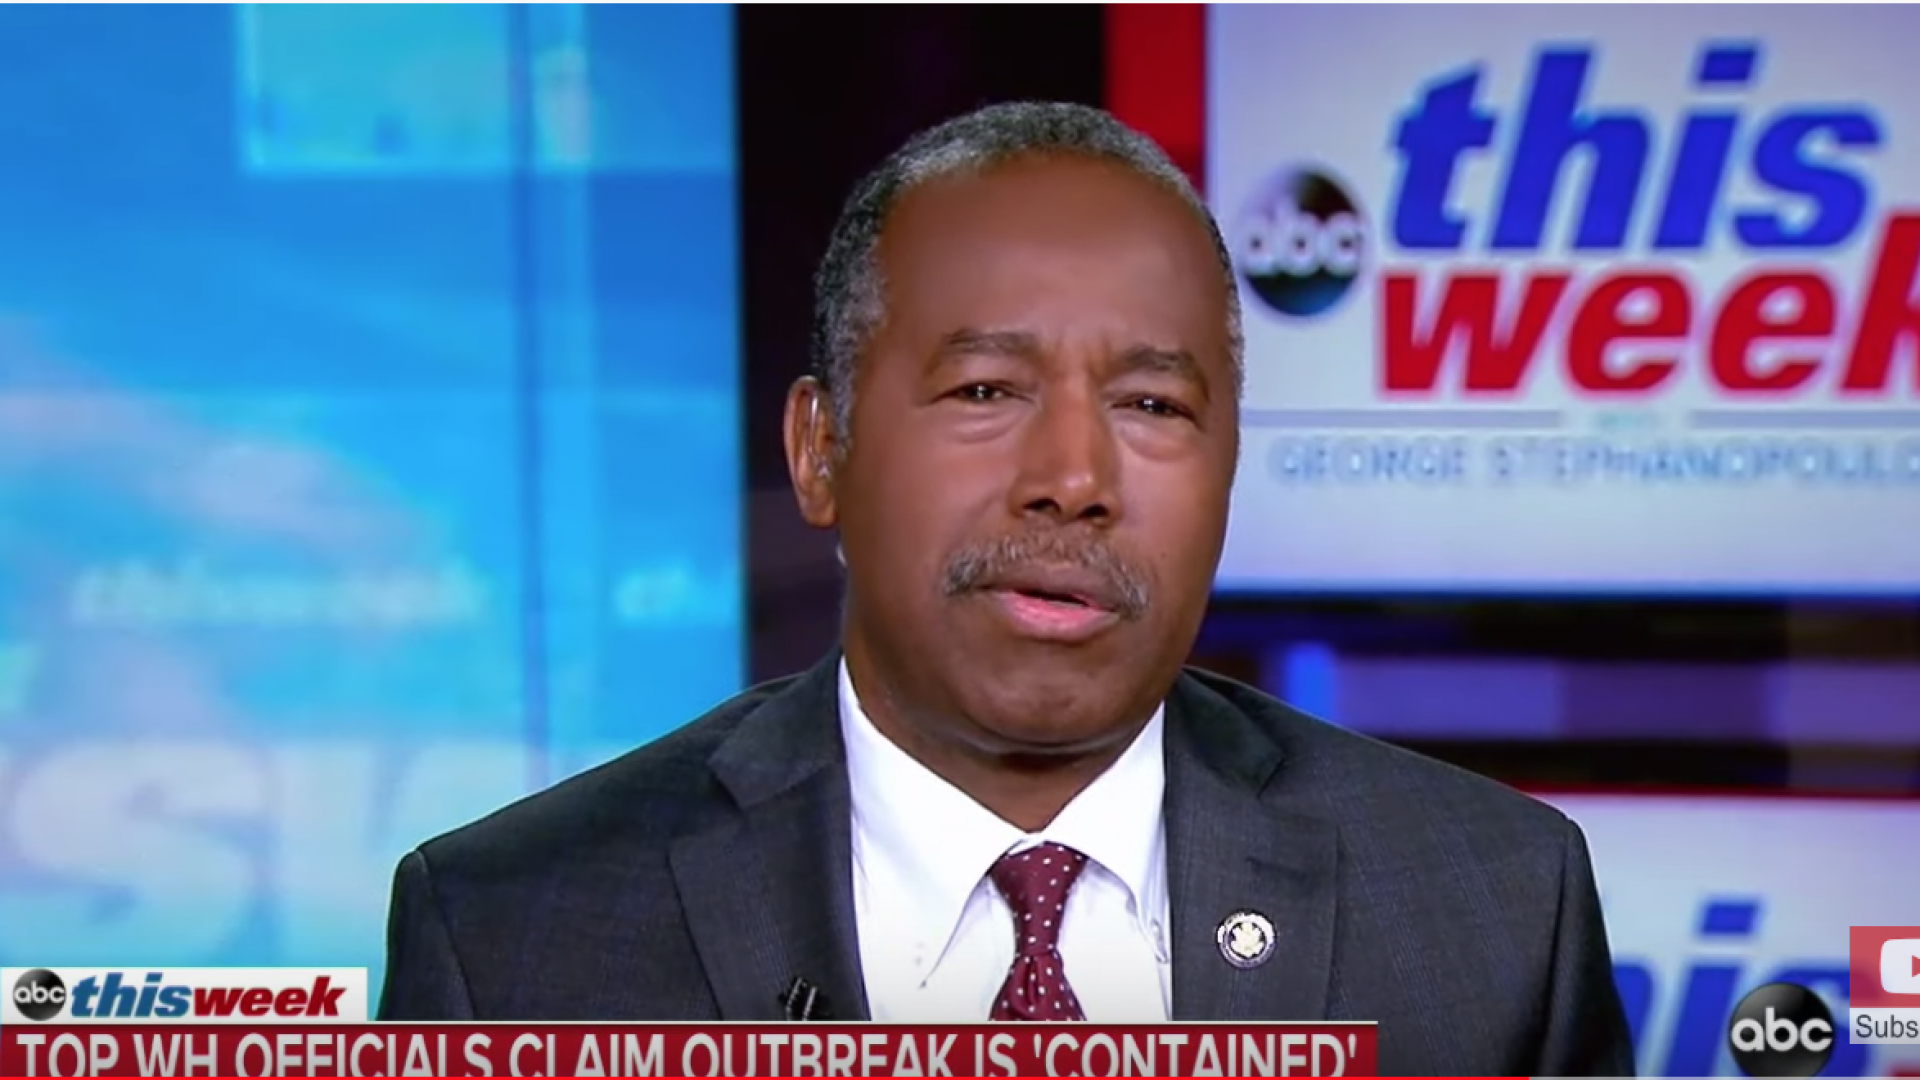 Ben Carson Can't Seem To Figure Out Where The Administration Stands On Coronavirus